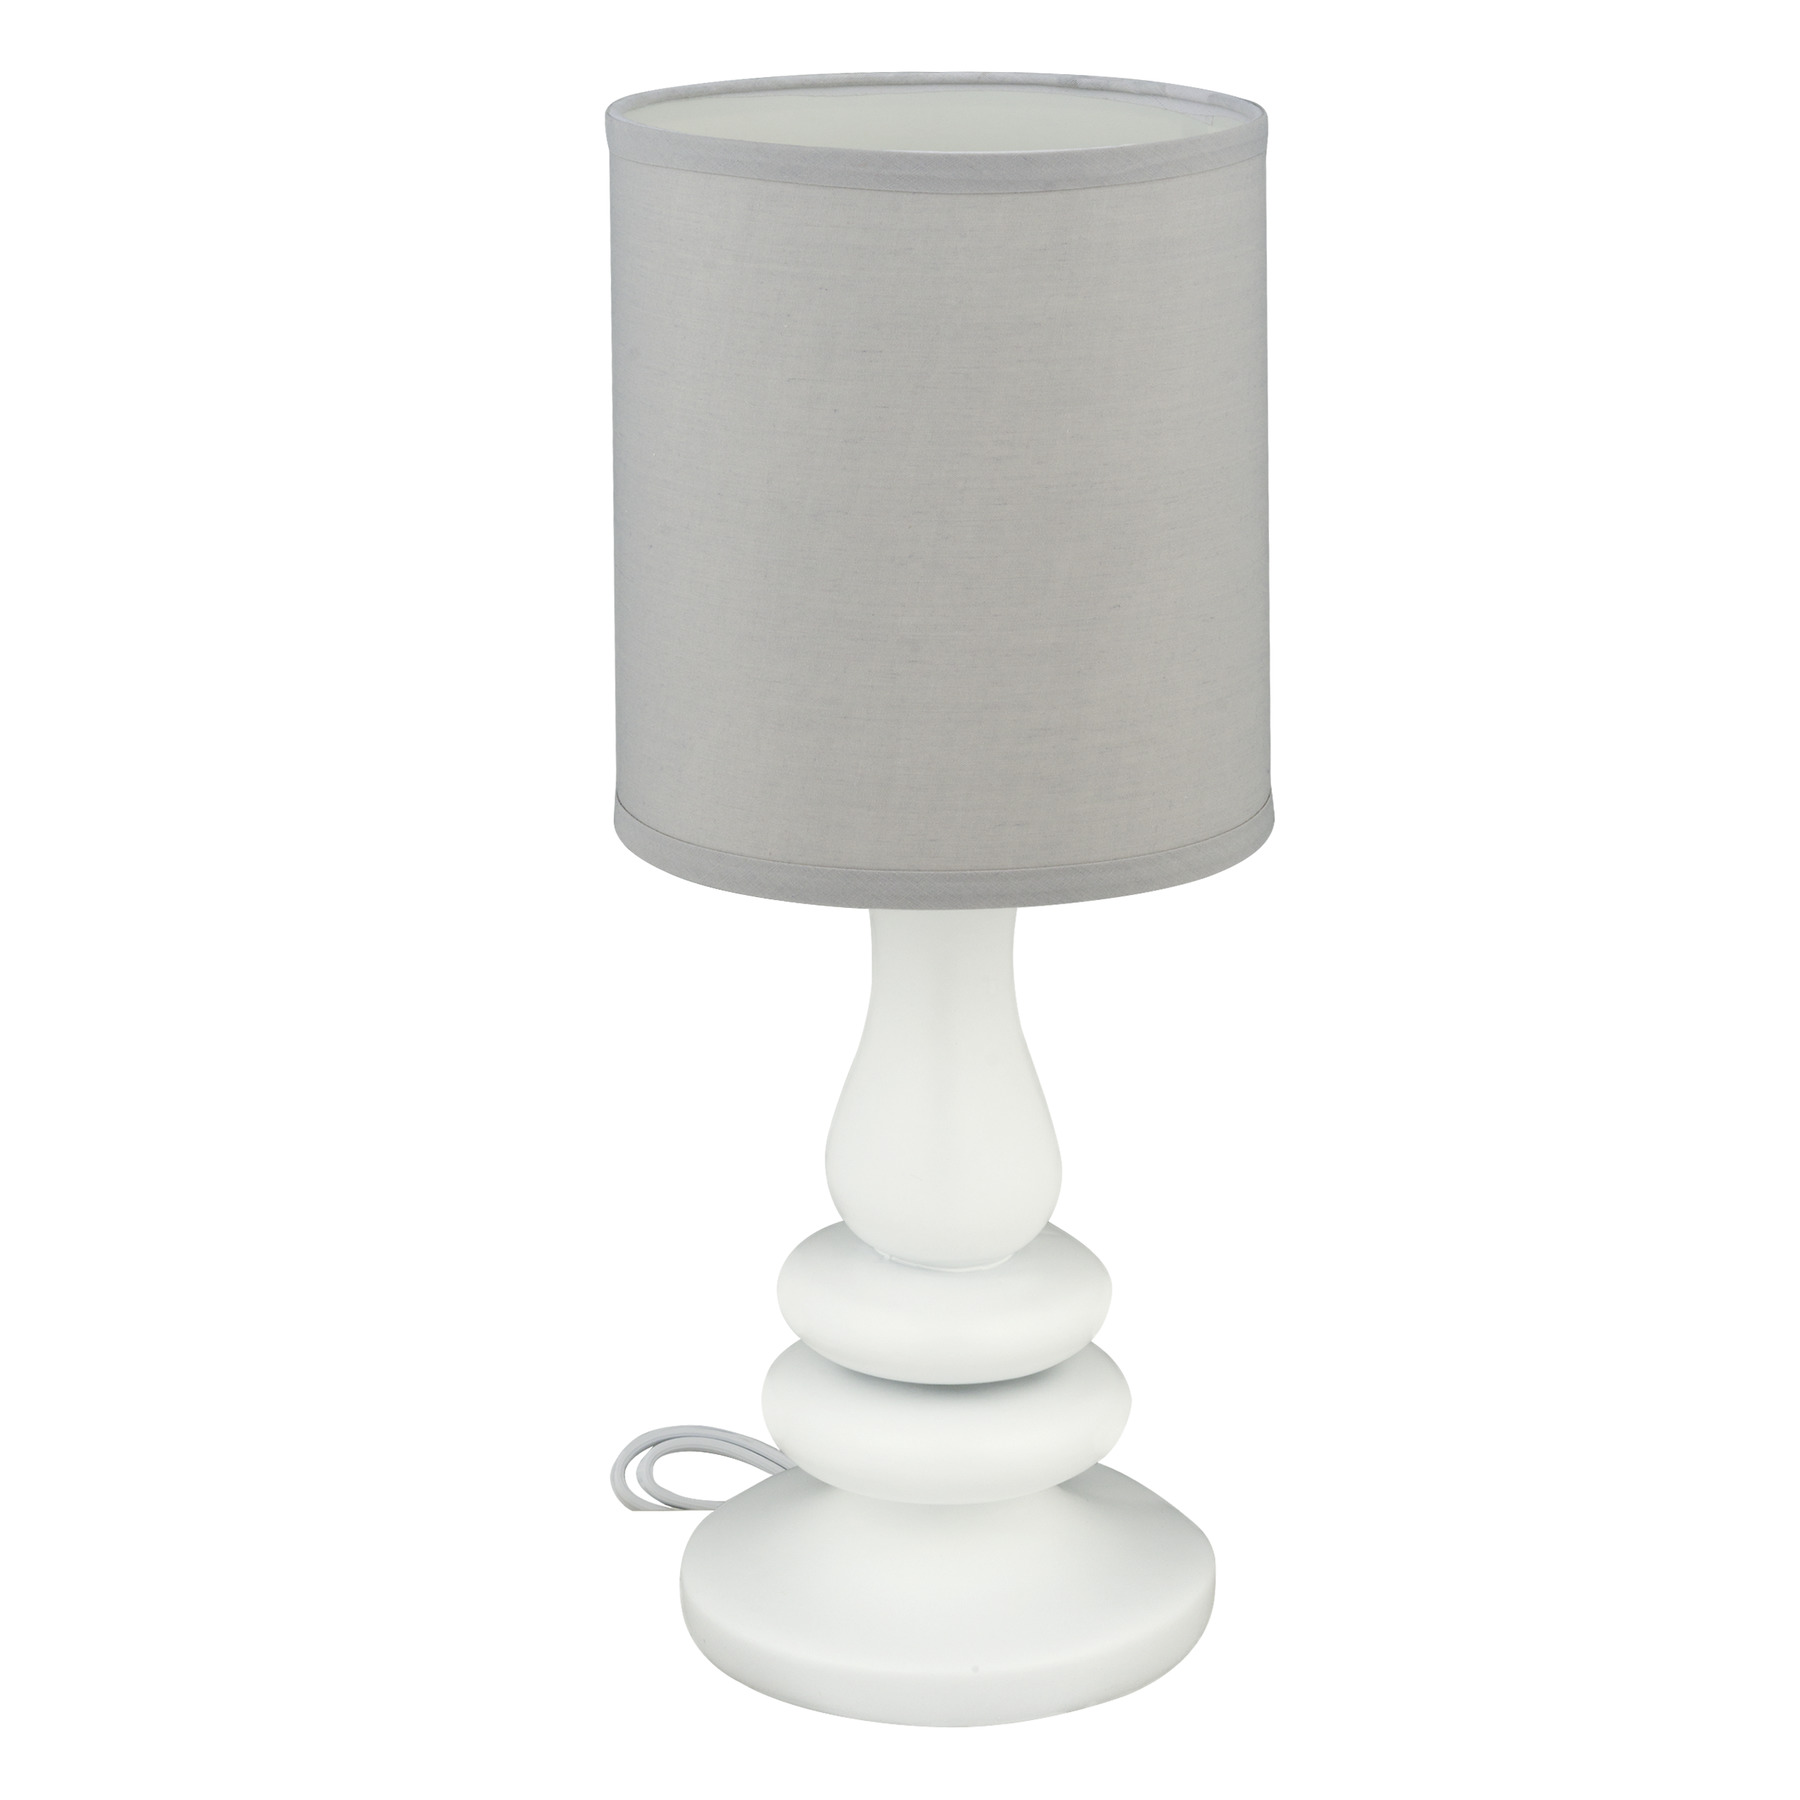 Little Love Lamp White Resin  Grey Shade, 1.0 CT by Little Love by NoJo